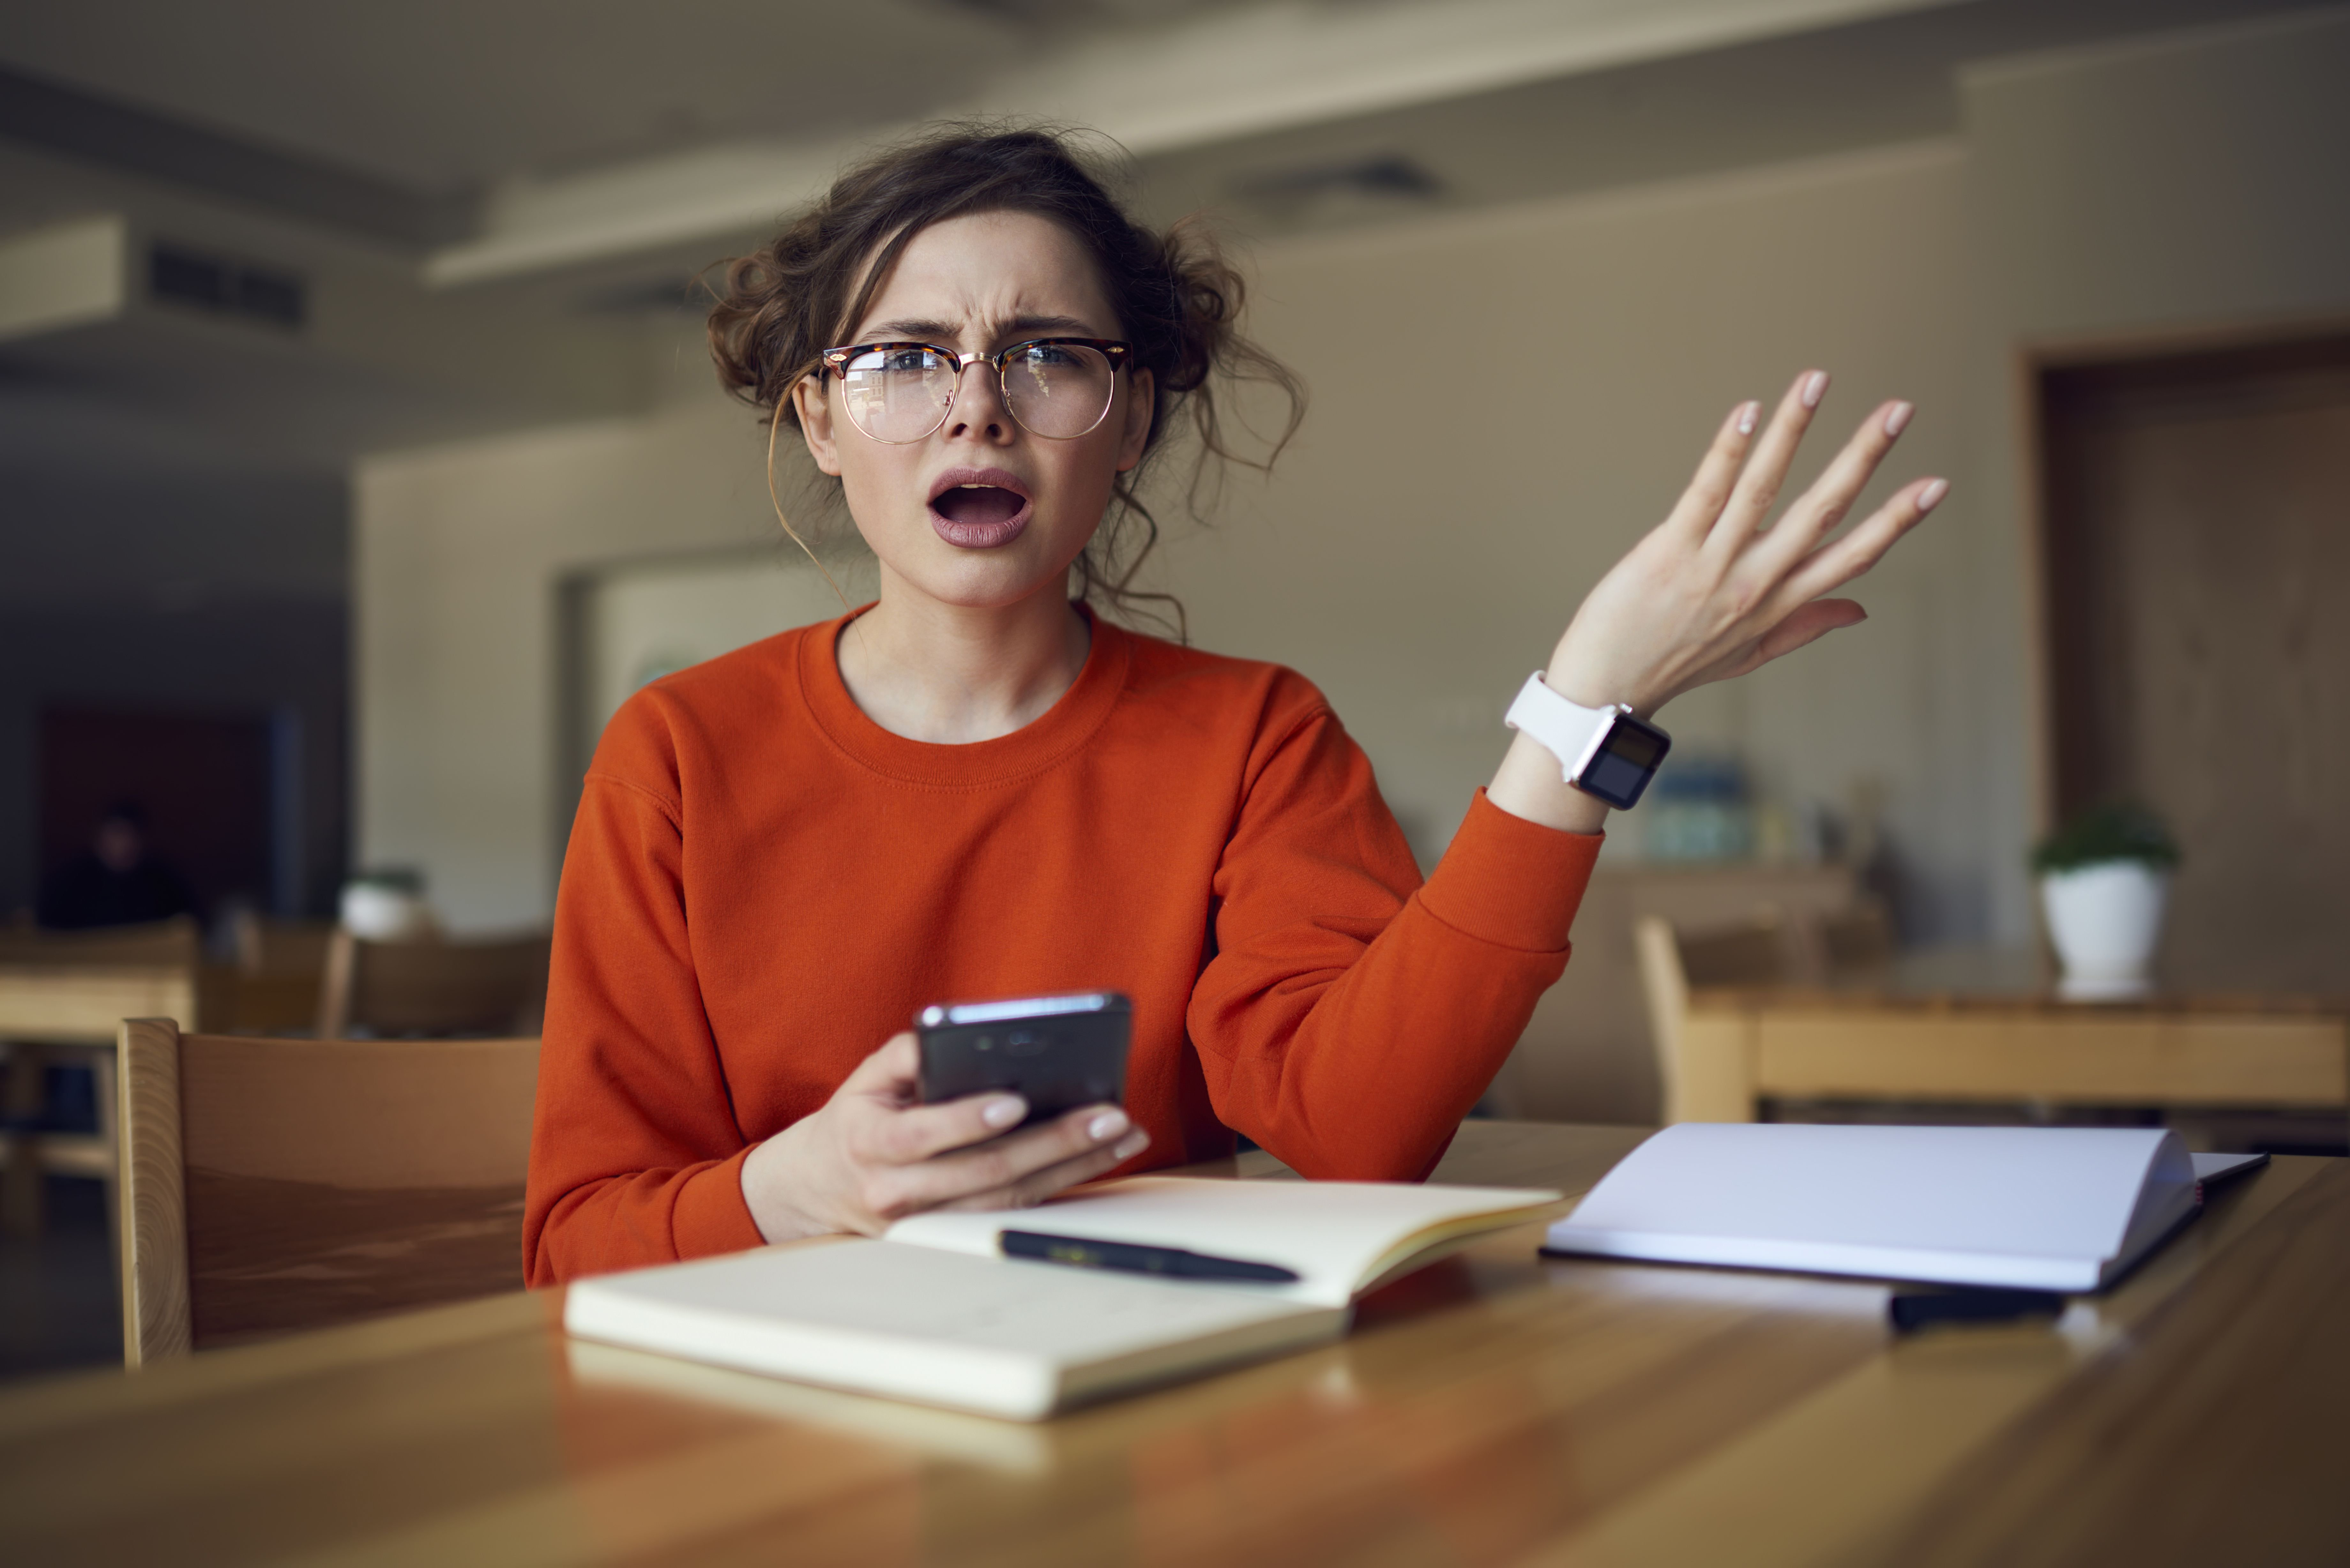 A woman looks upset and shocked at what she saw on her phone. | Source: Shutterstock